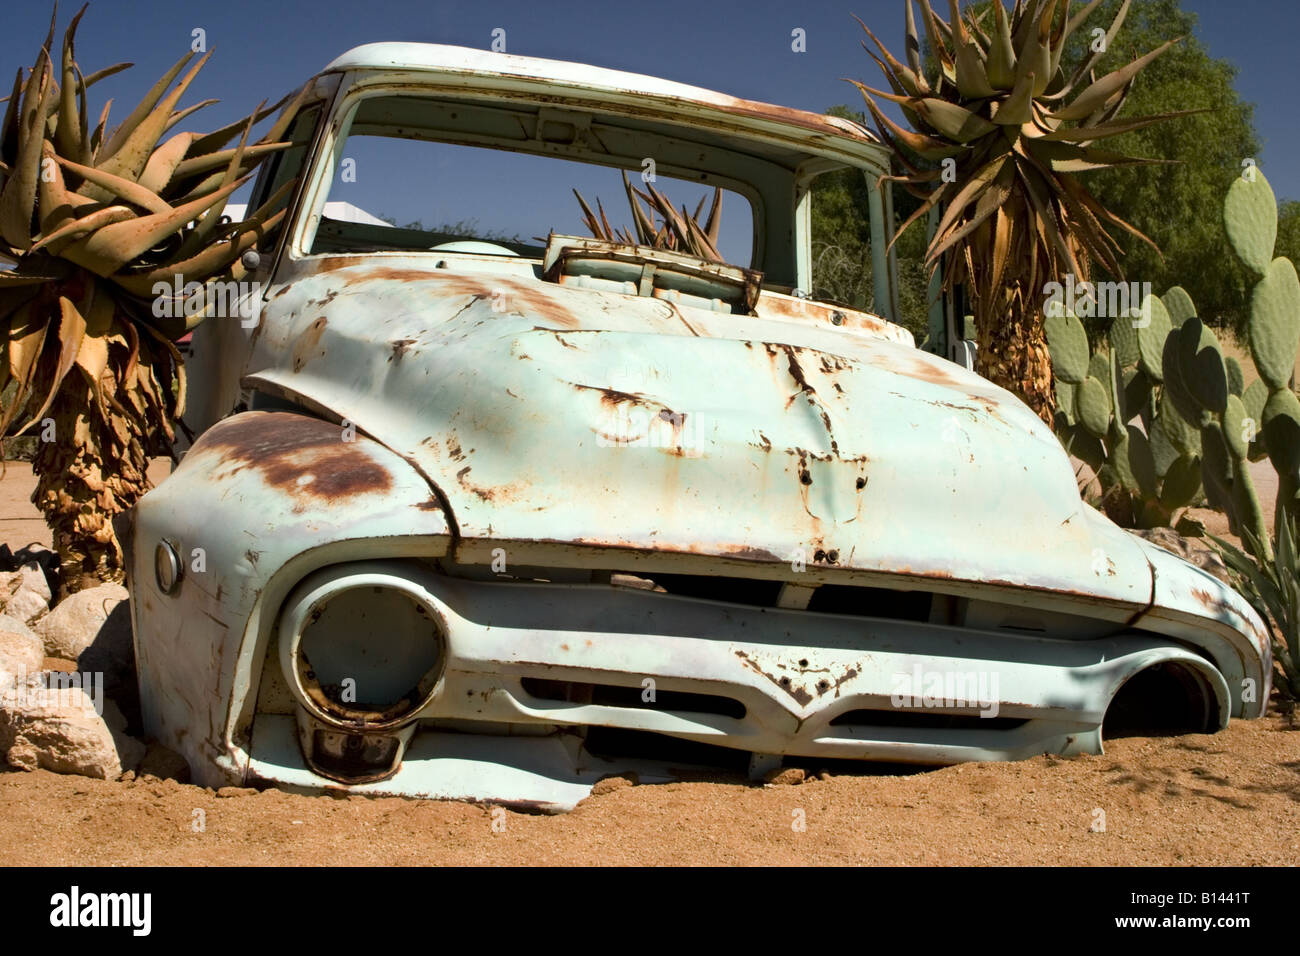 One of a number of vehicles at Solitaire Namibia South Western Africa - Stock Image